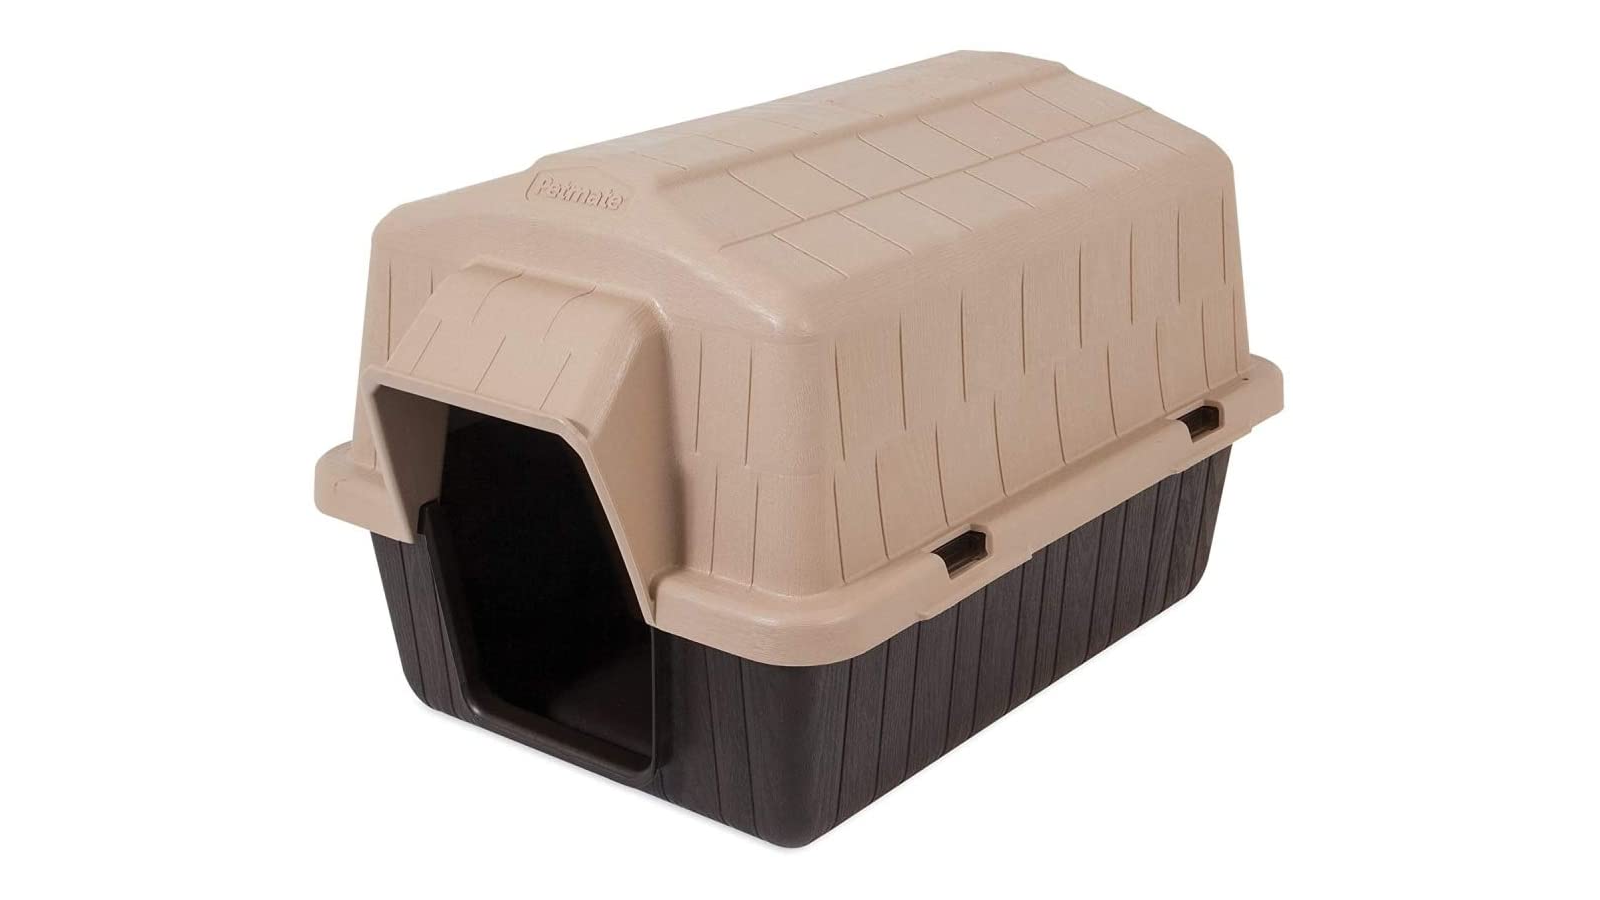 Brown and dark brown plastic doghouse.